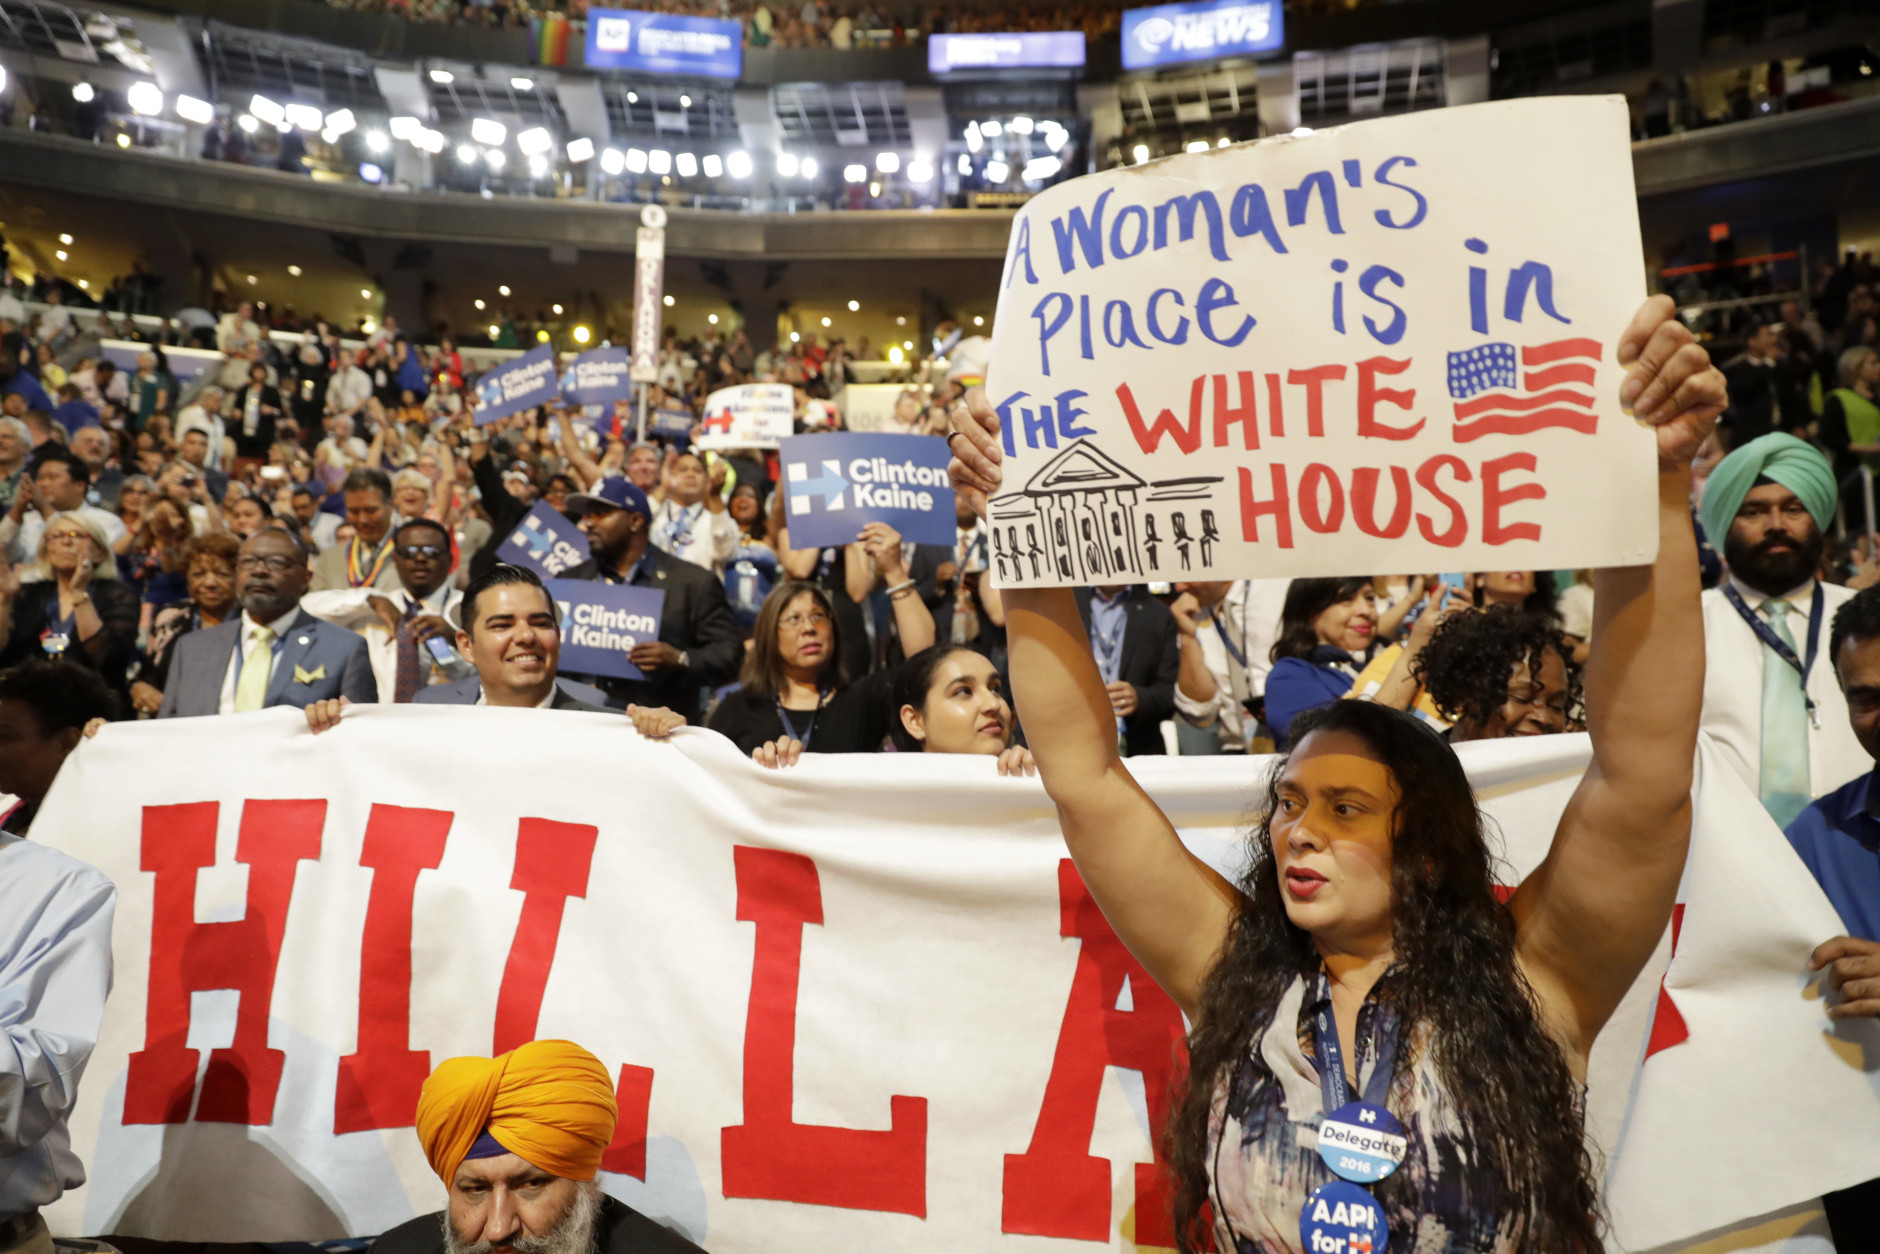 California delegates hold up signs as they cheer for Democratic presidential nominee Hillary Clinton during the final day of the Democratic National Convention in Philadelphia, Thursday, July 28, 2016. (AP Photo/Matt Rourke)